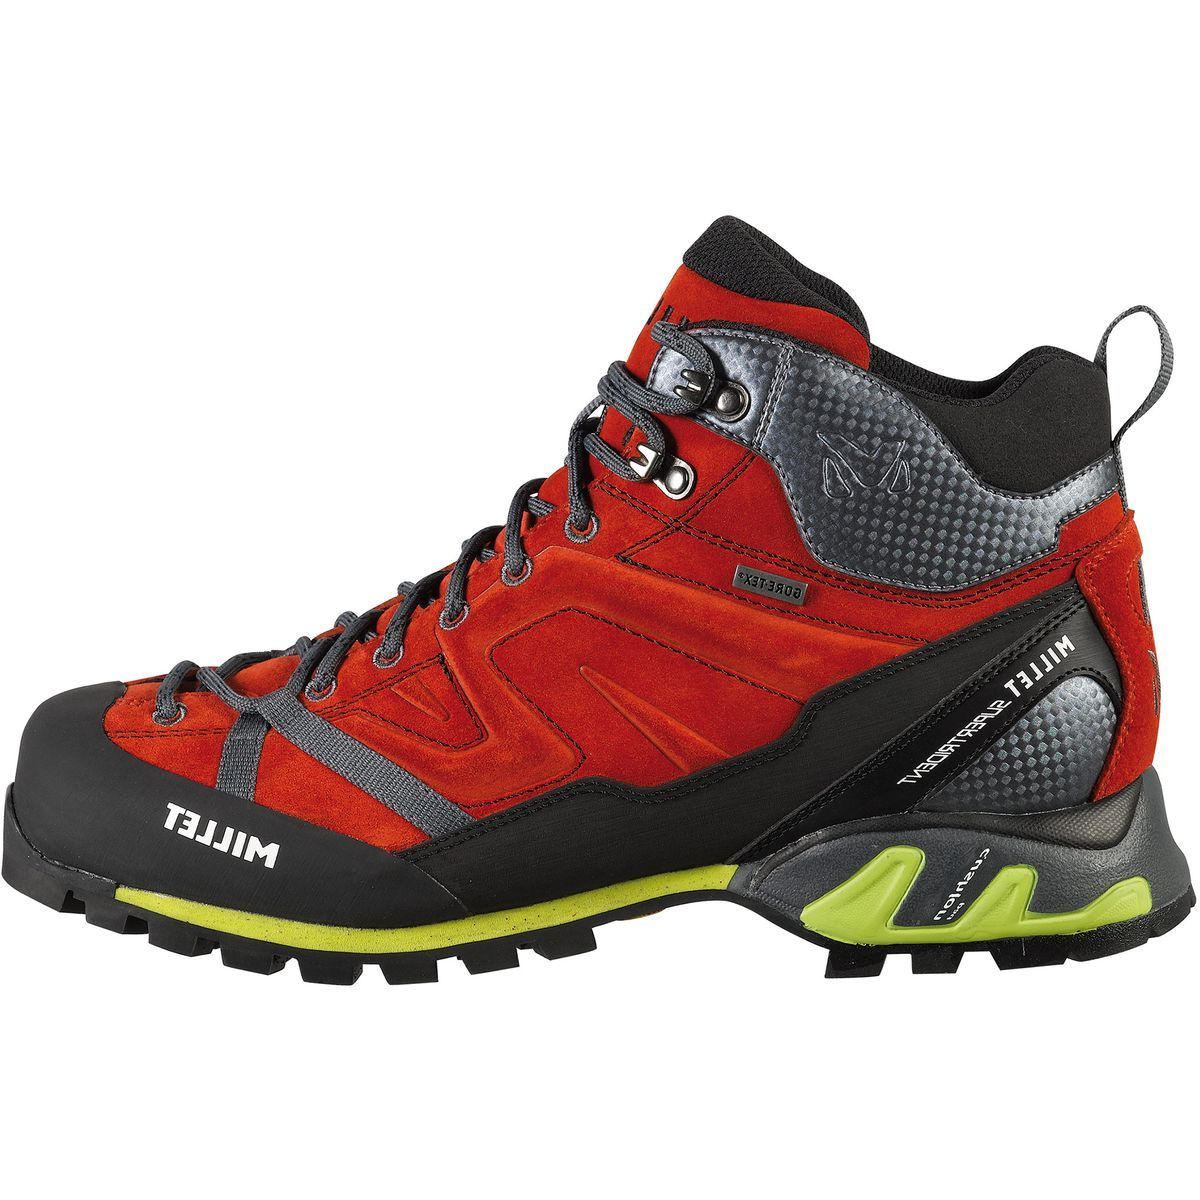 Millet Super Trident GTX Shoe - Men's